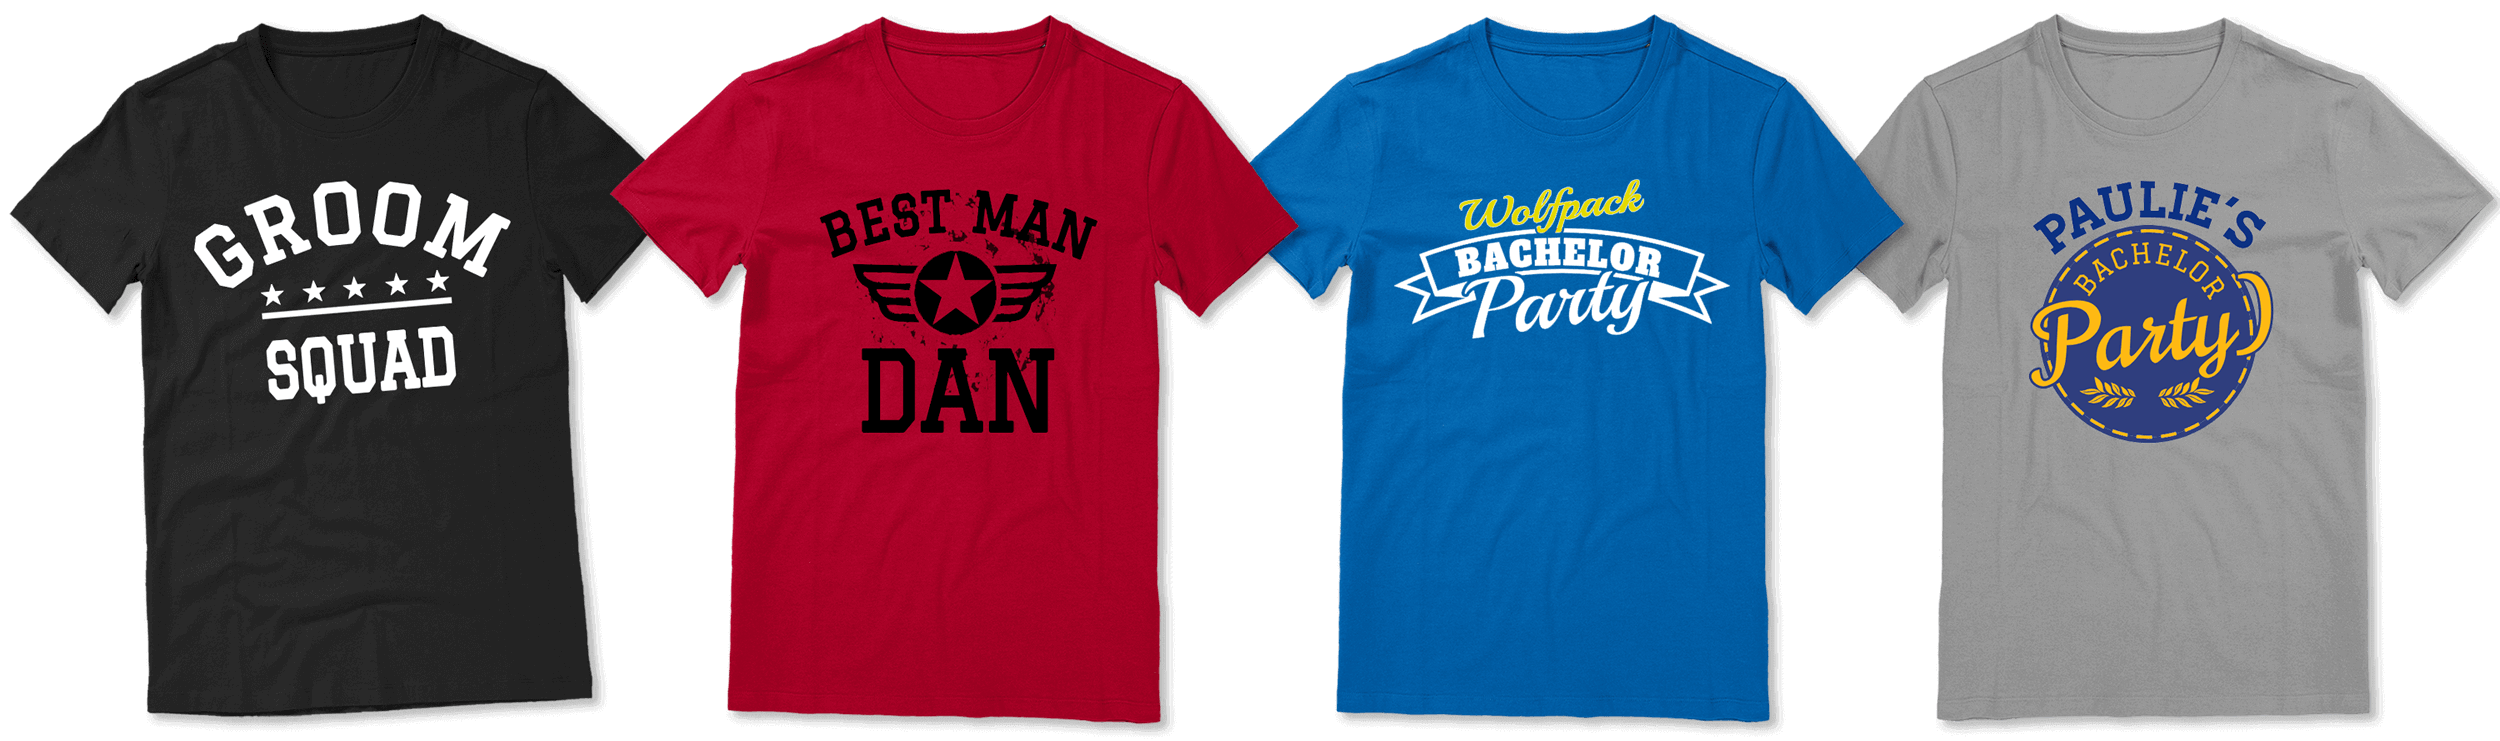 Custom Bachelor party t-shirts with various design